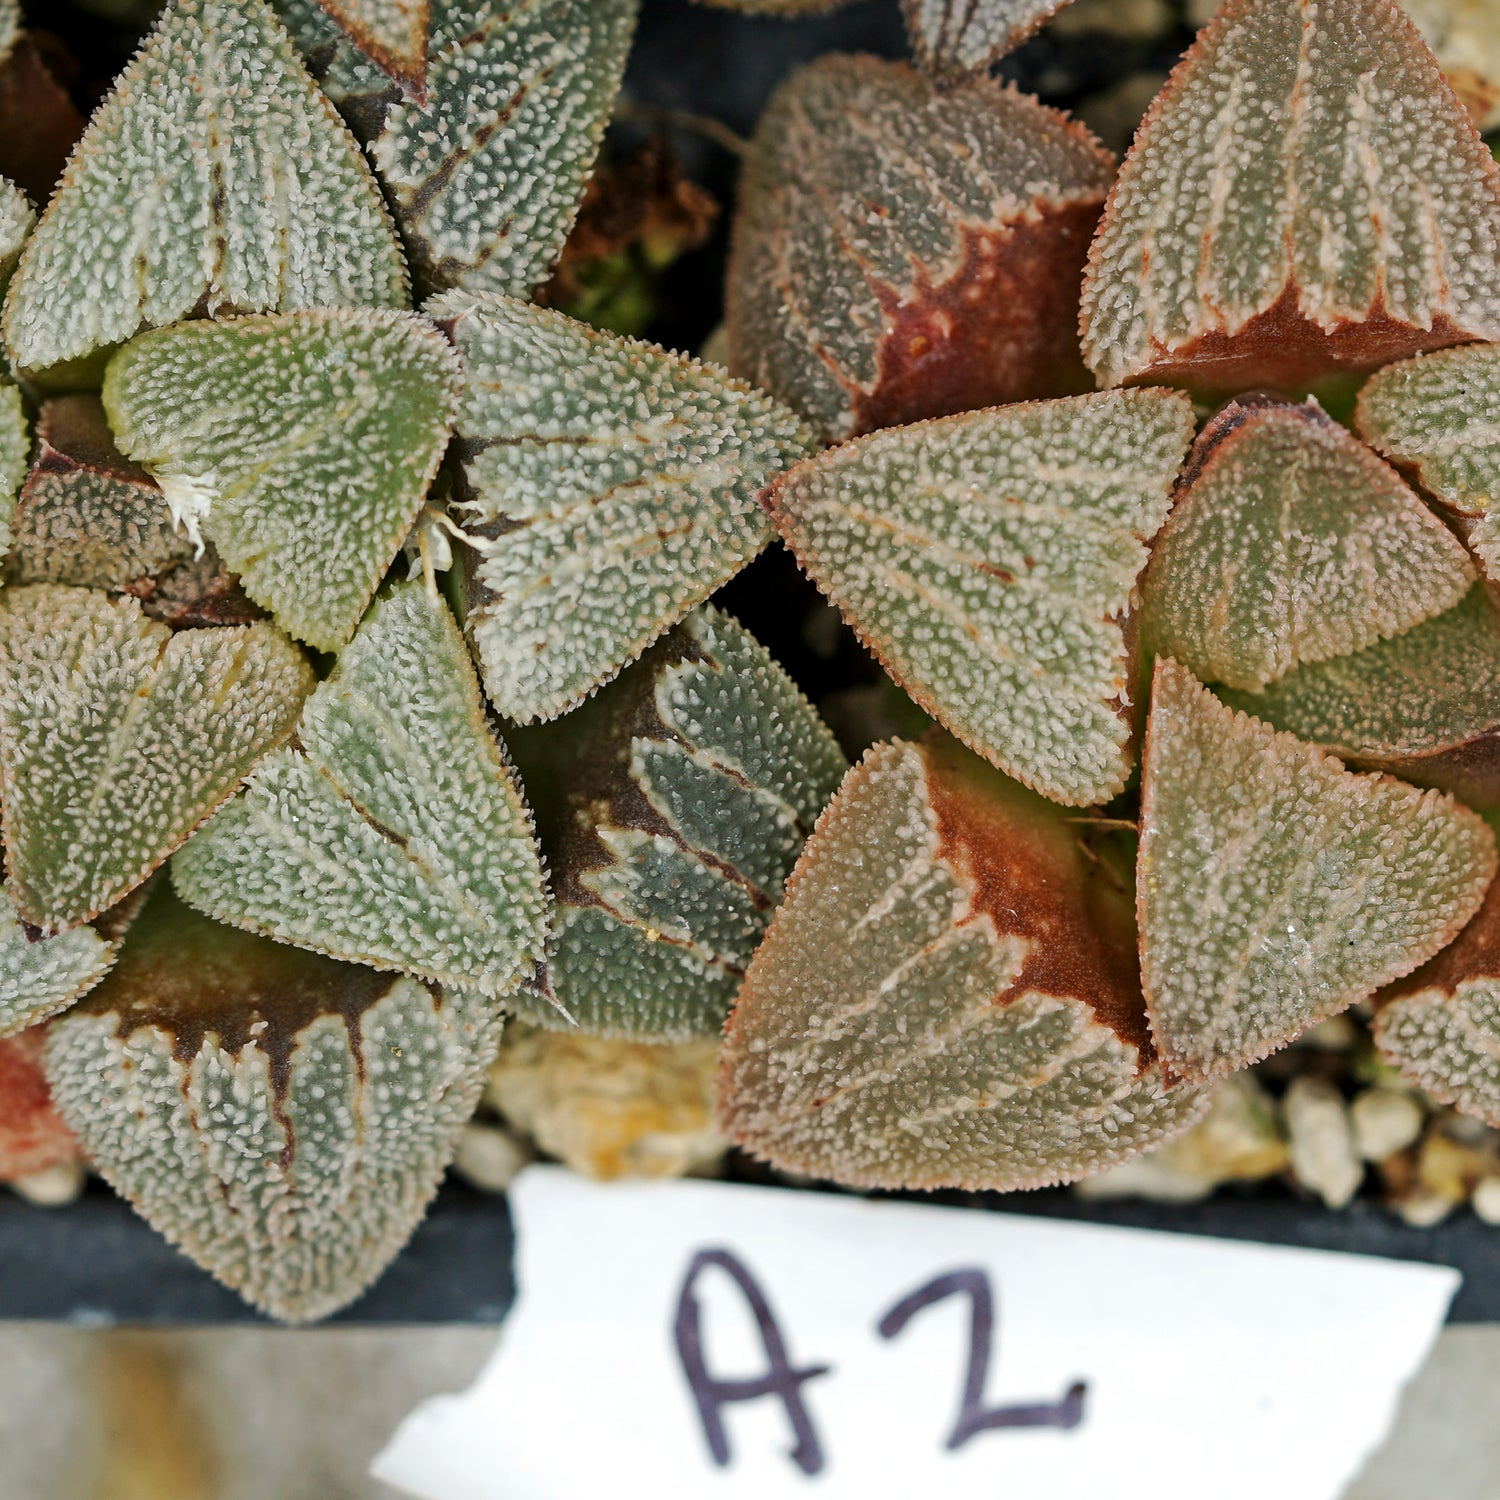 Haworthia hybrid series PP273, 2 siblings (a2)